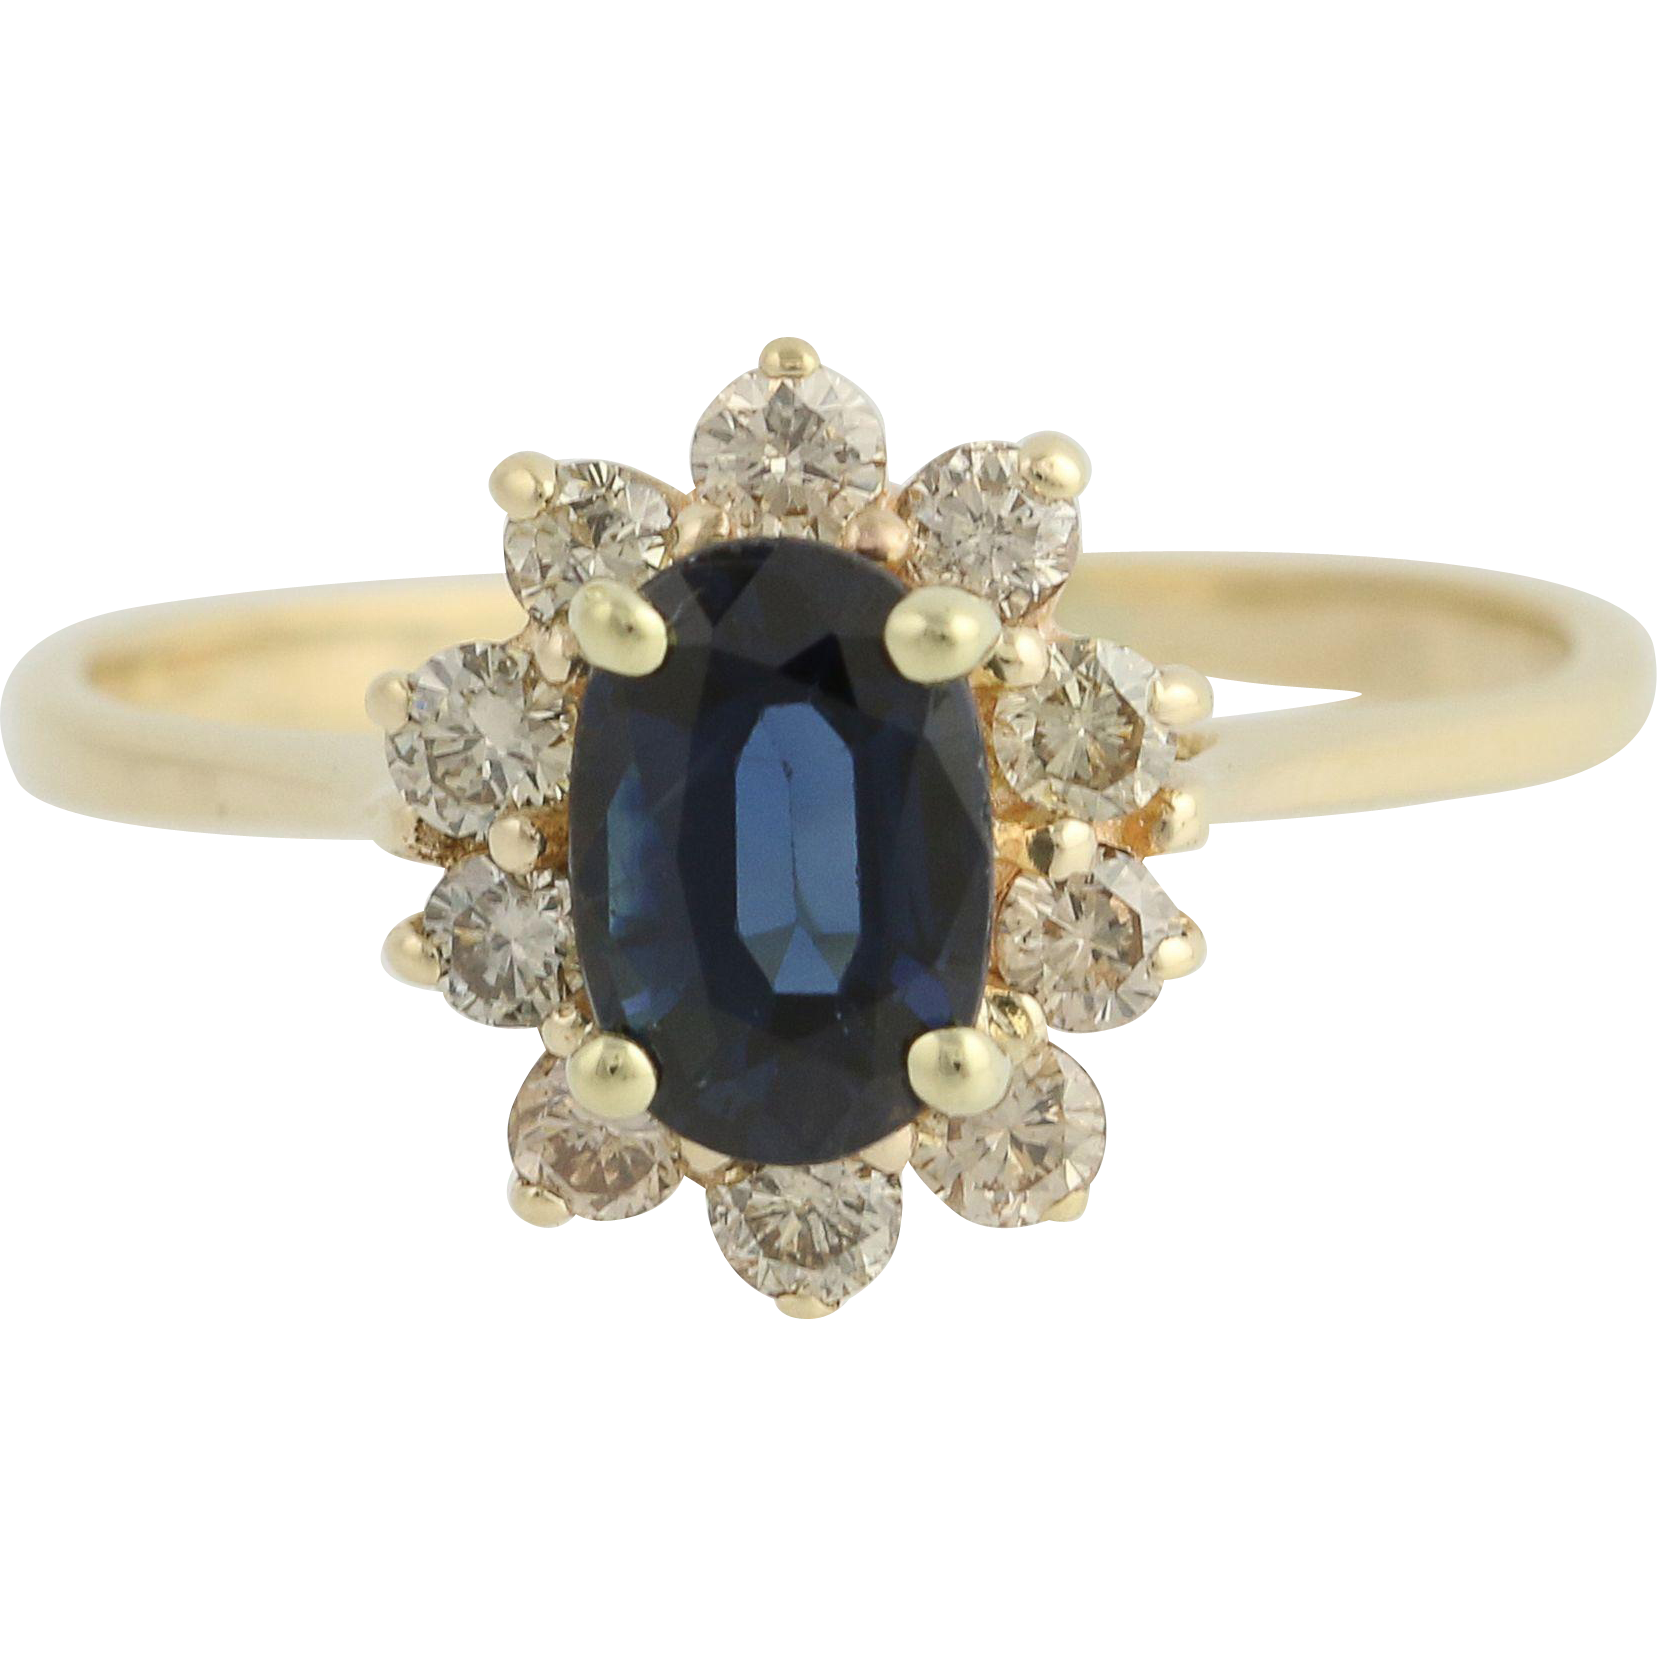 Blue Sapphire Diamond Halo Ring - 14k Yellow Gold Women's Oval Cut 1.73ctw